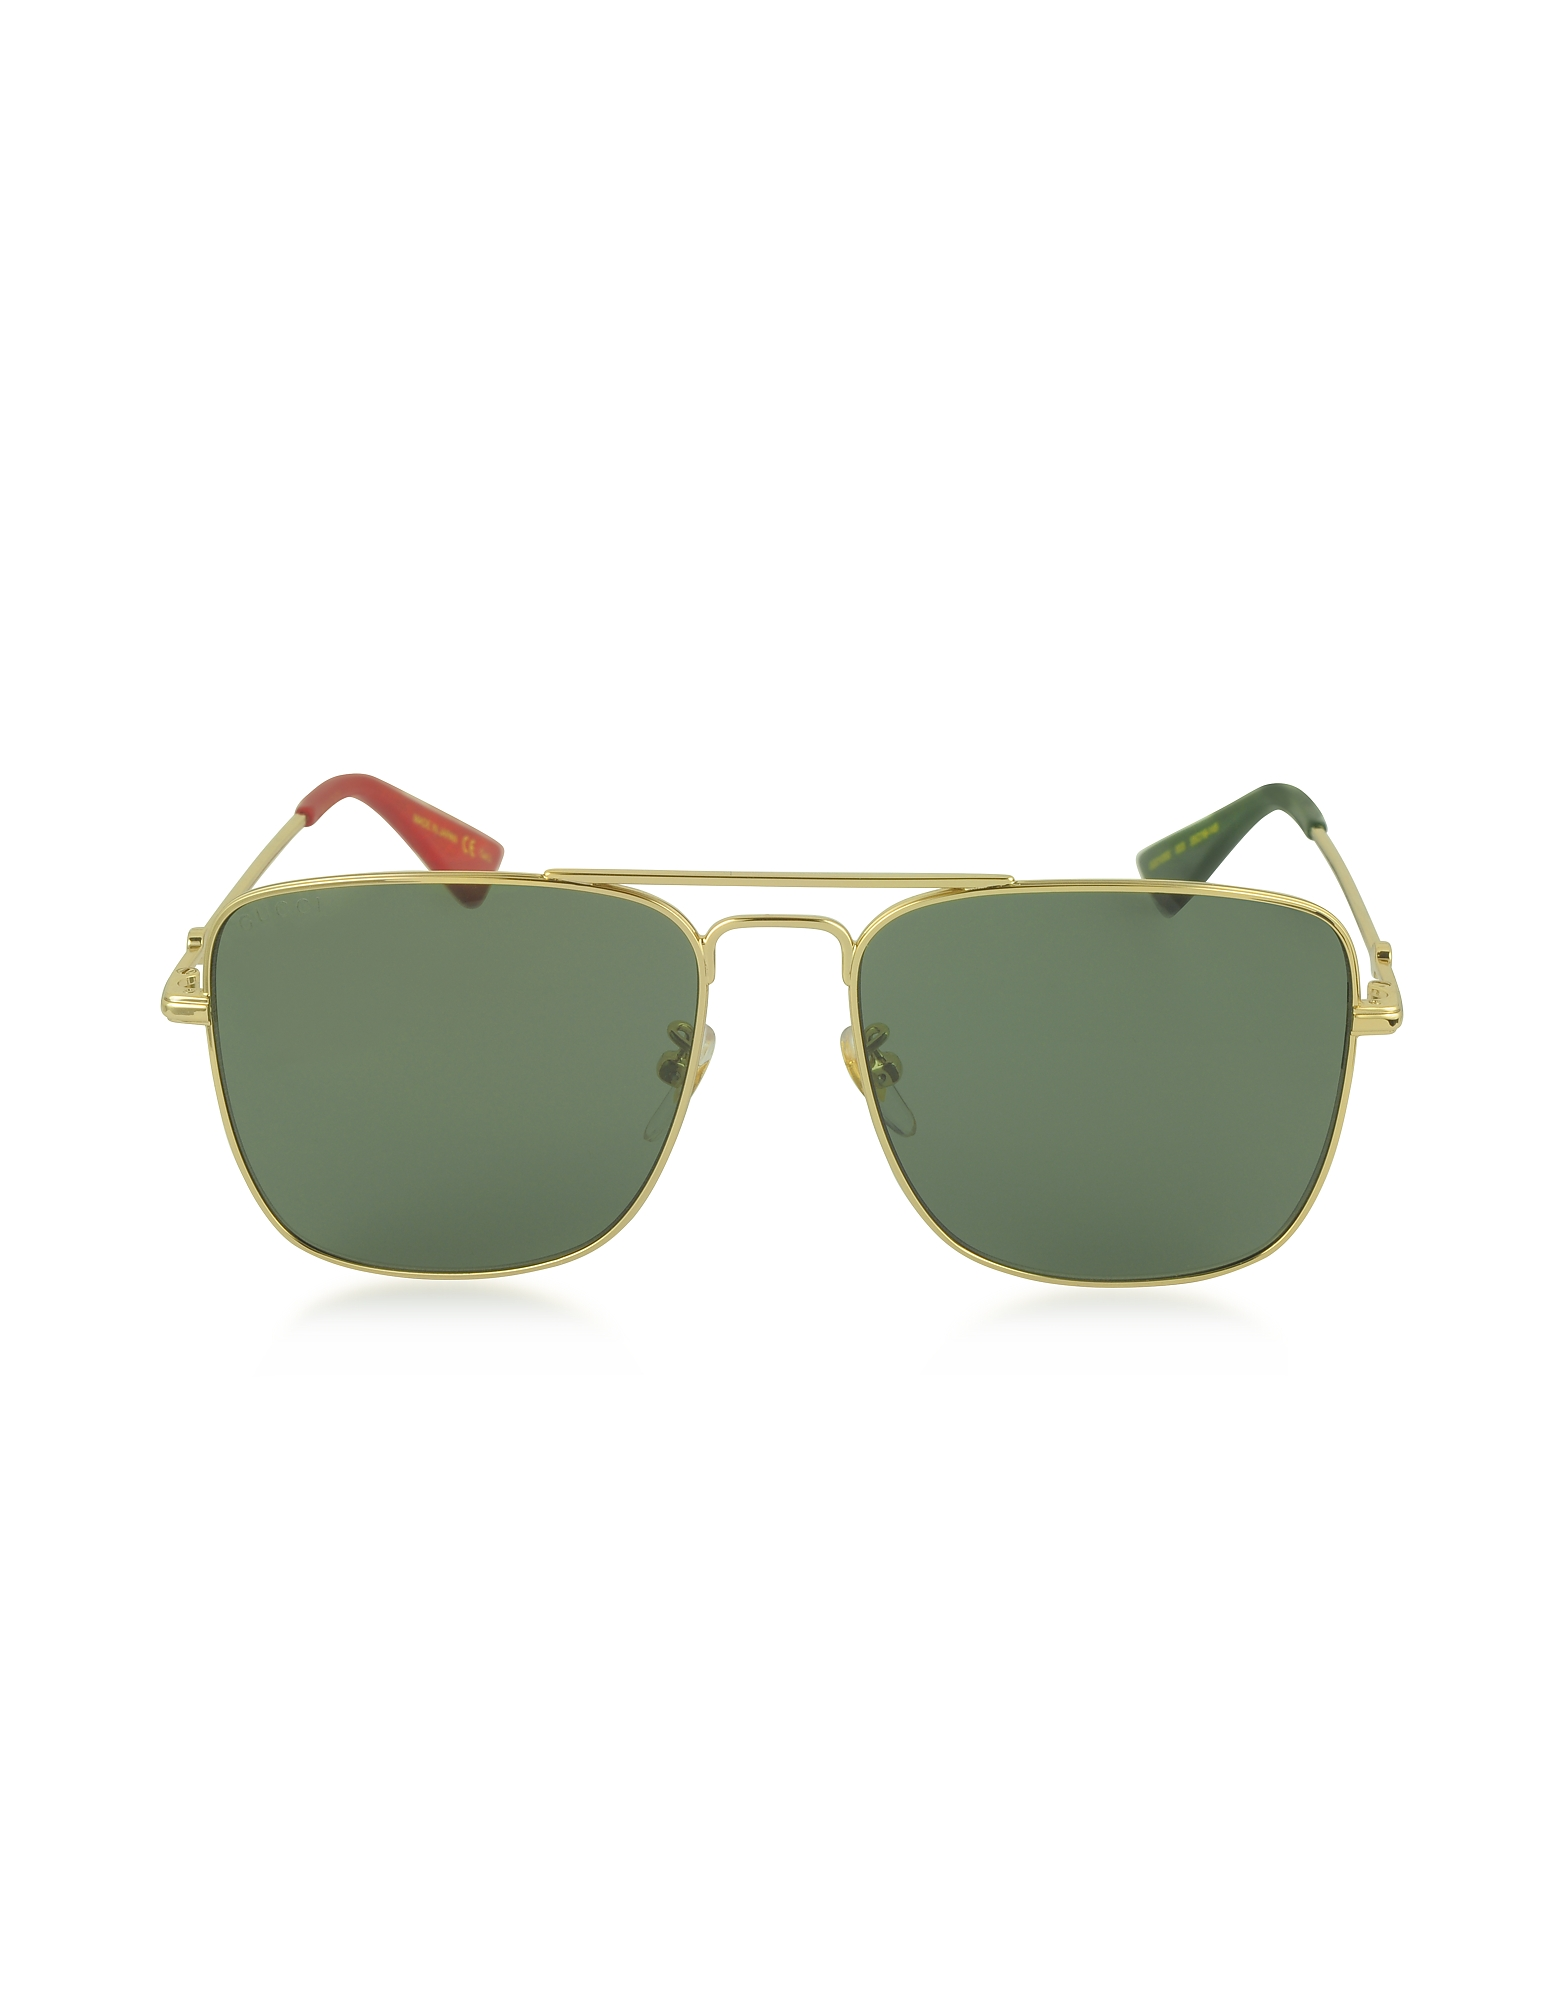 Gucci Sunglasses, GG0108S Gold Metal Square Aviator Men's Sunglasses